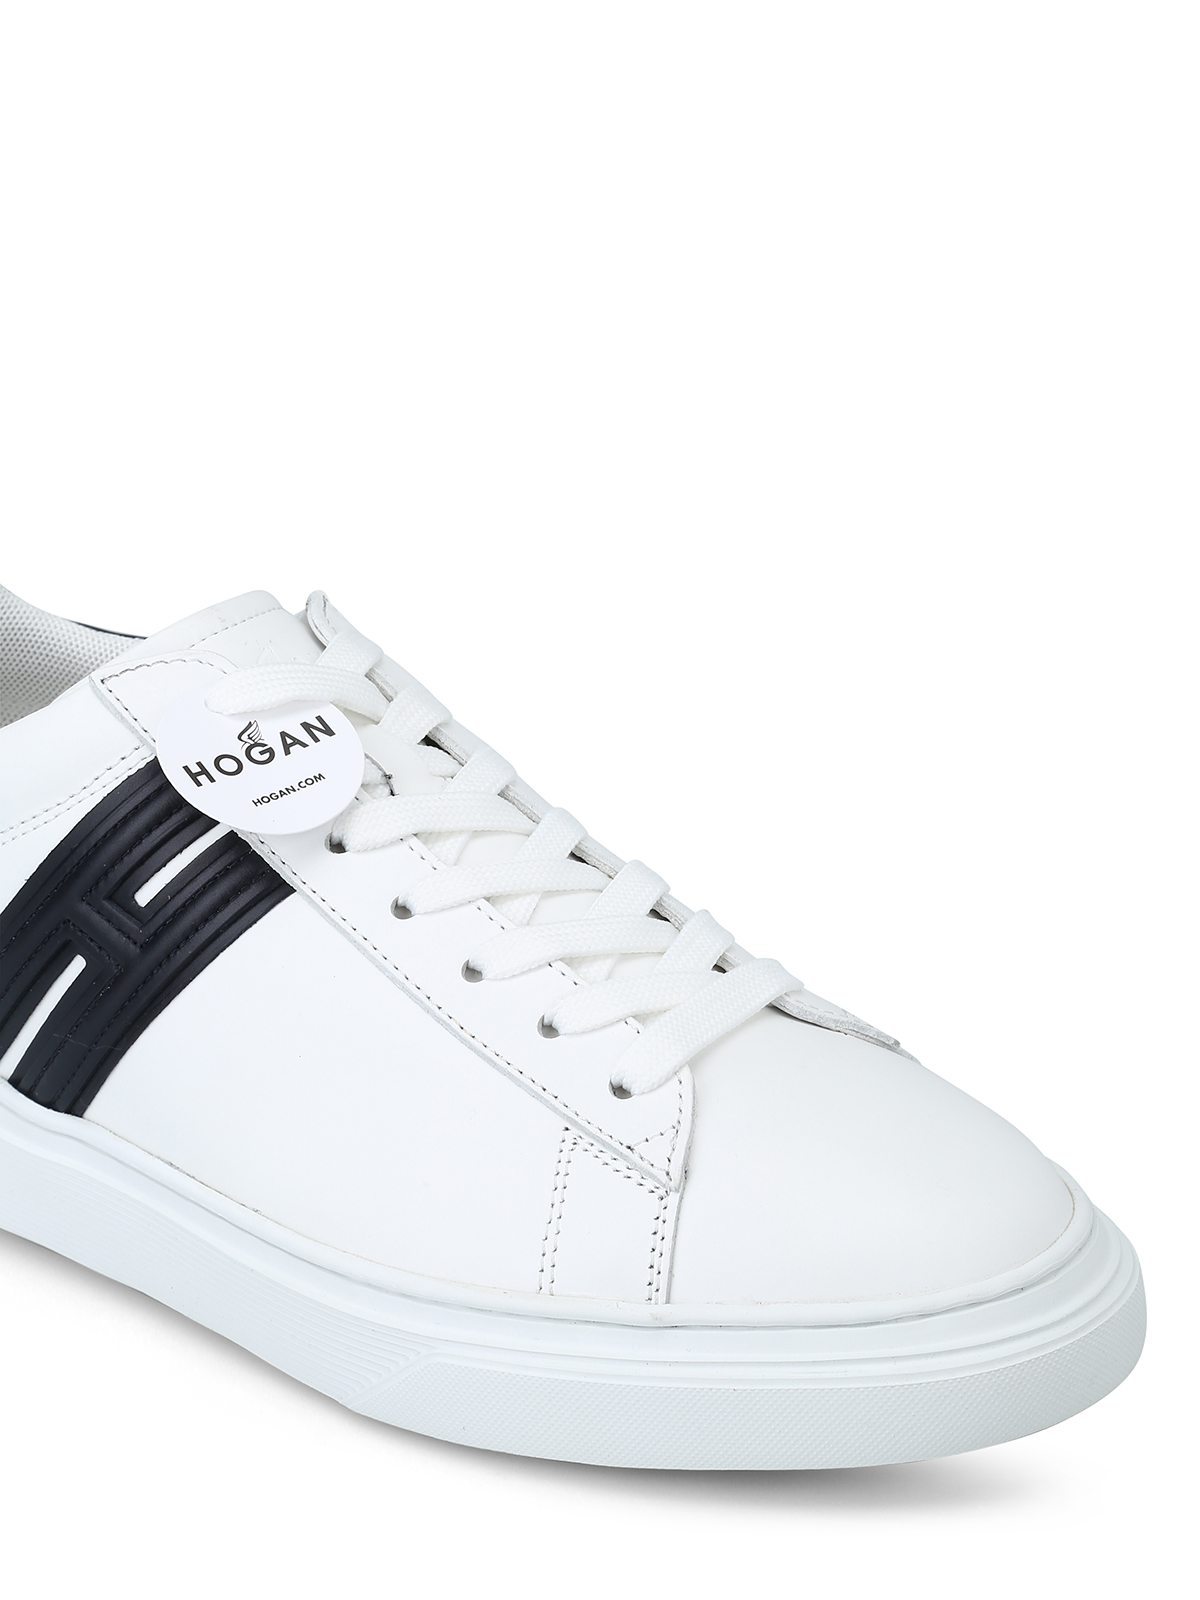 Trainers Hogan - H365 elongated H white leather sneakers ...